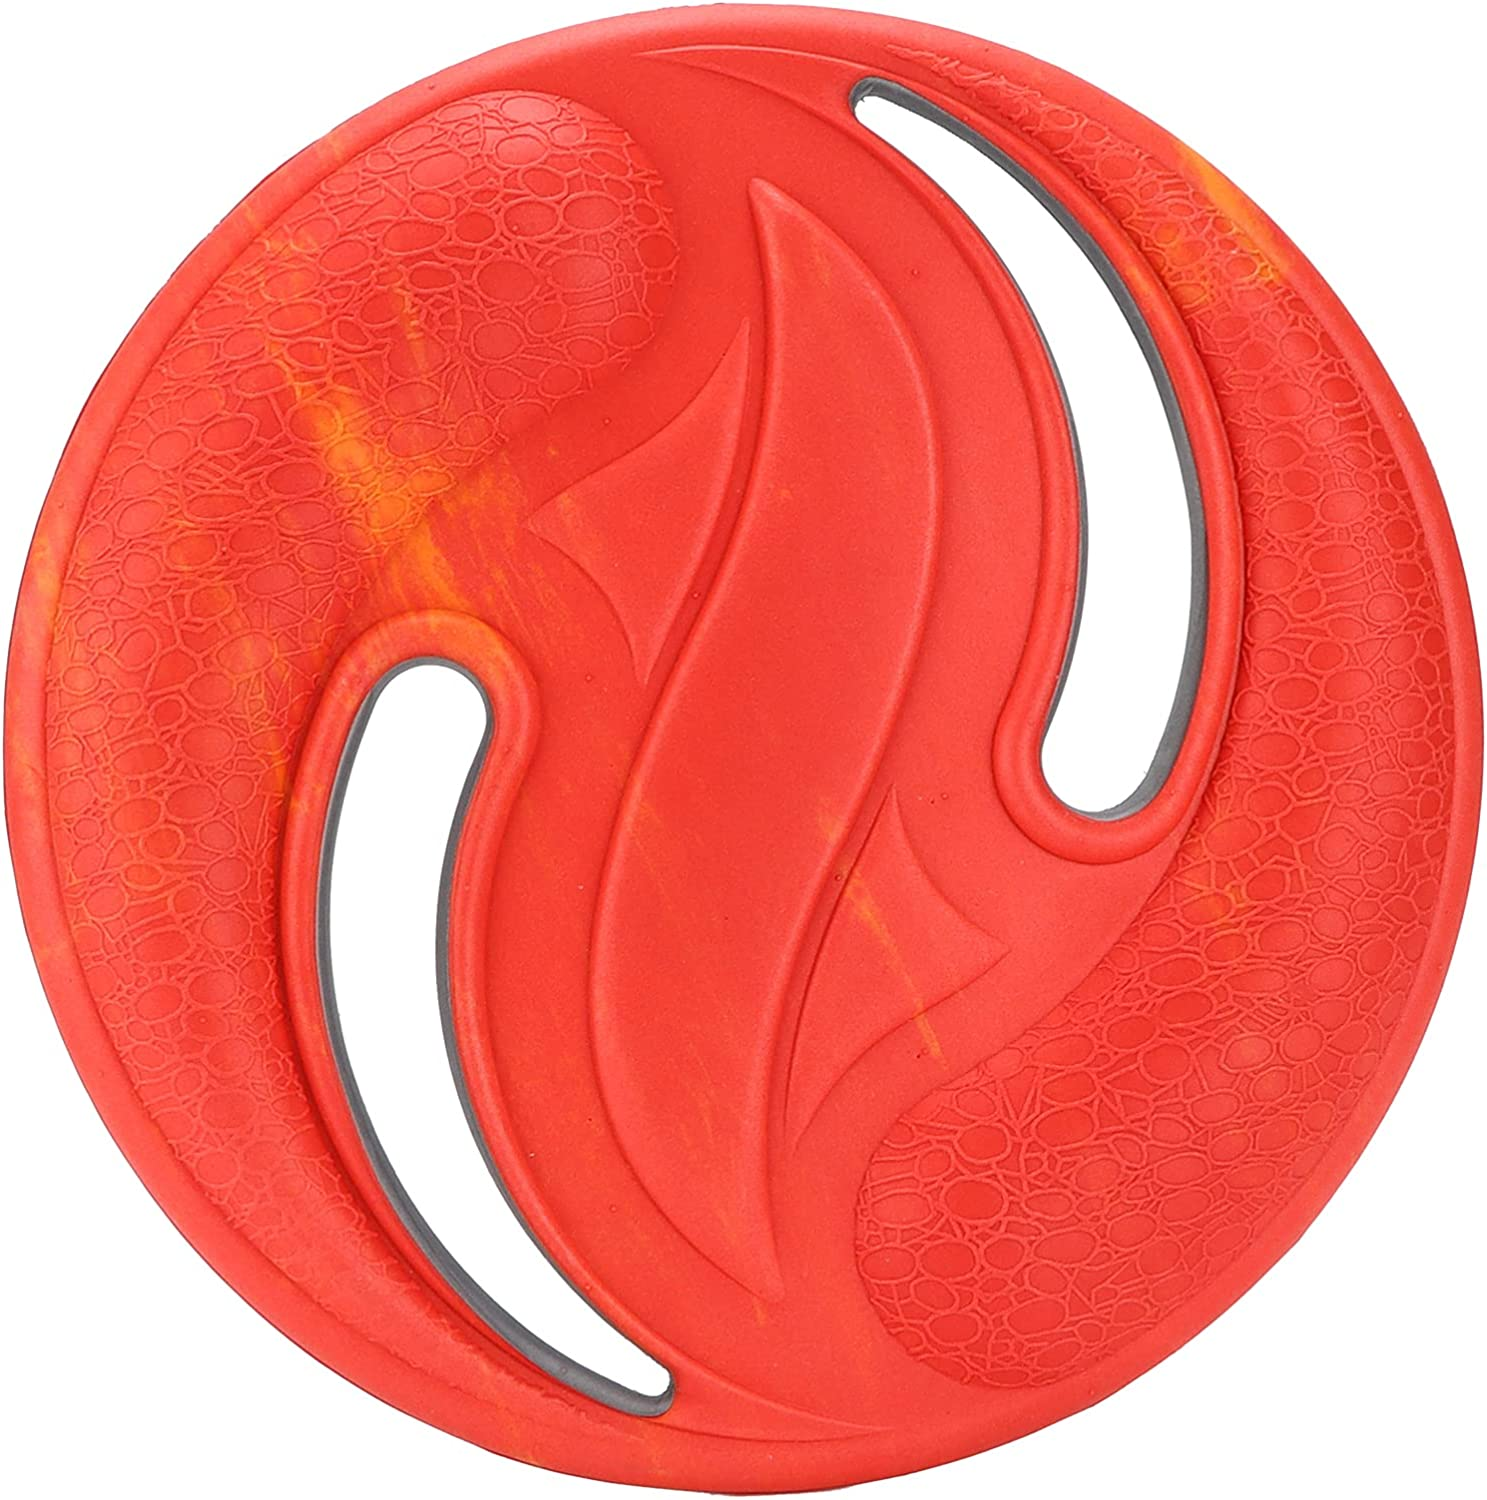 Outdoor Sports Flying Disc EVA Limited time cheap sale Ea and Foam Soft Inventory cleanup selling sale Not